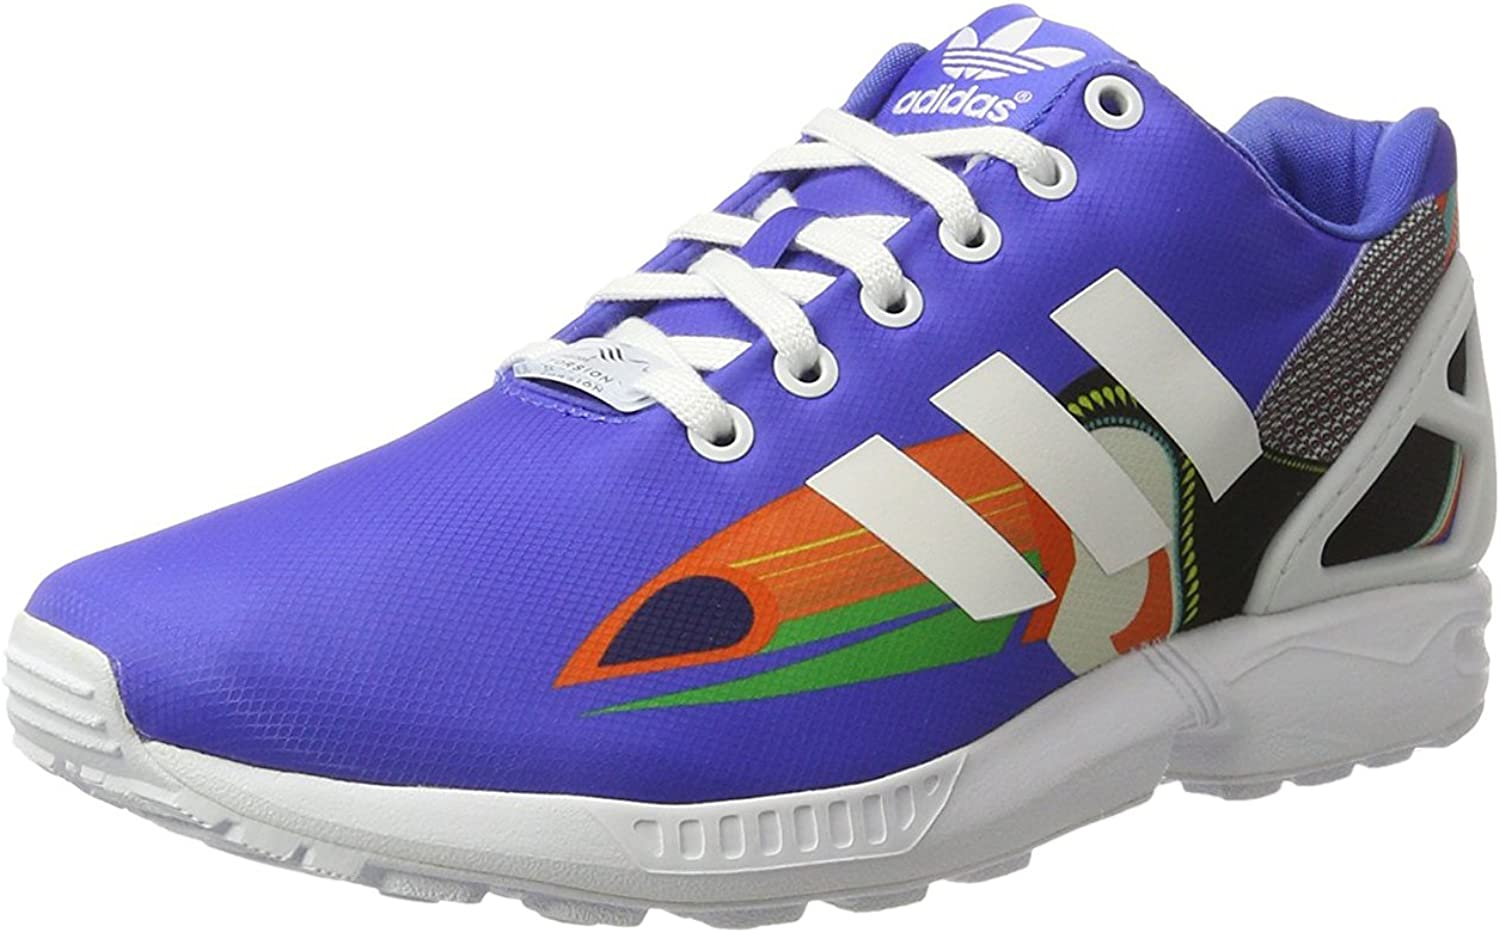 Adidas Originals ZX Flux Womens Sneakers   shoes